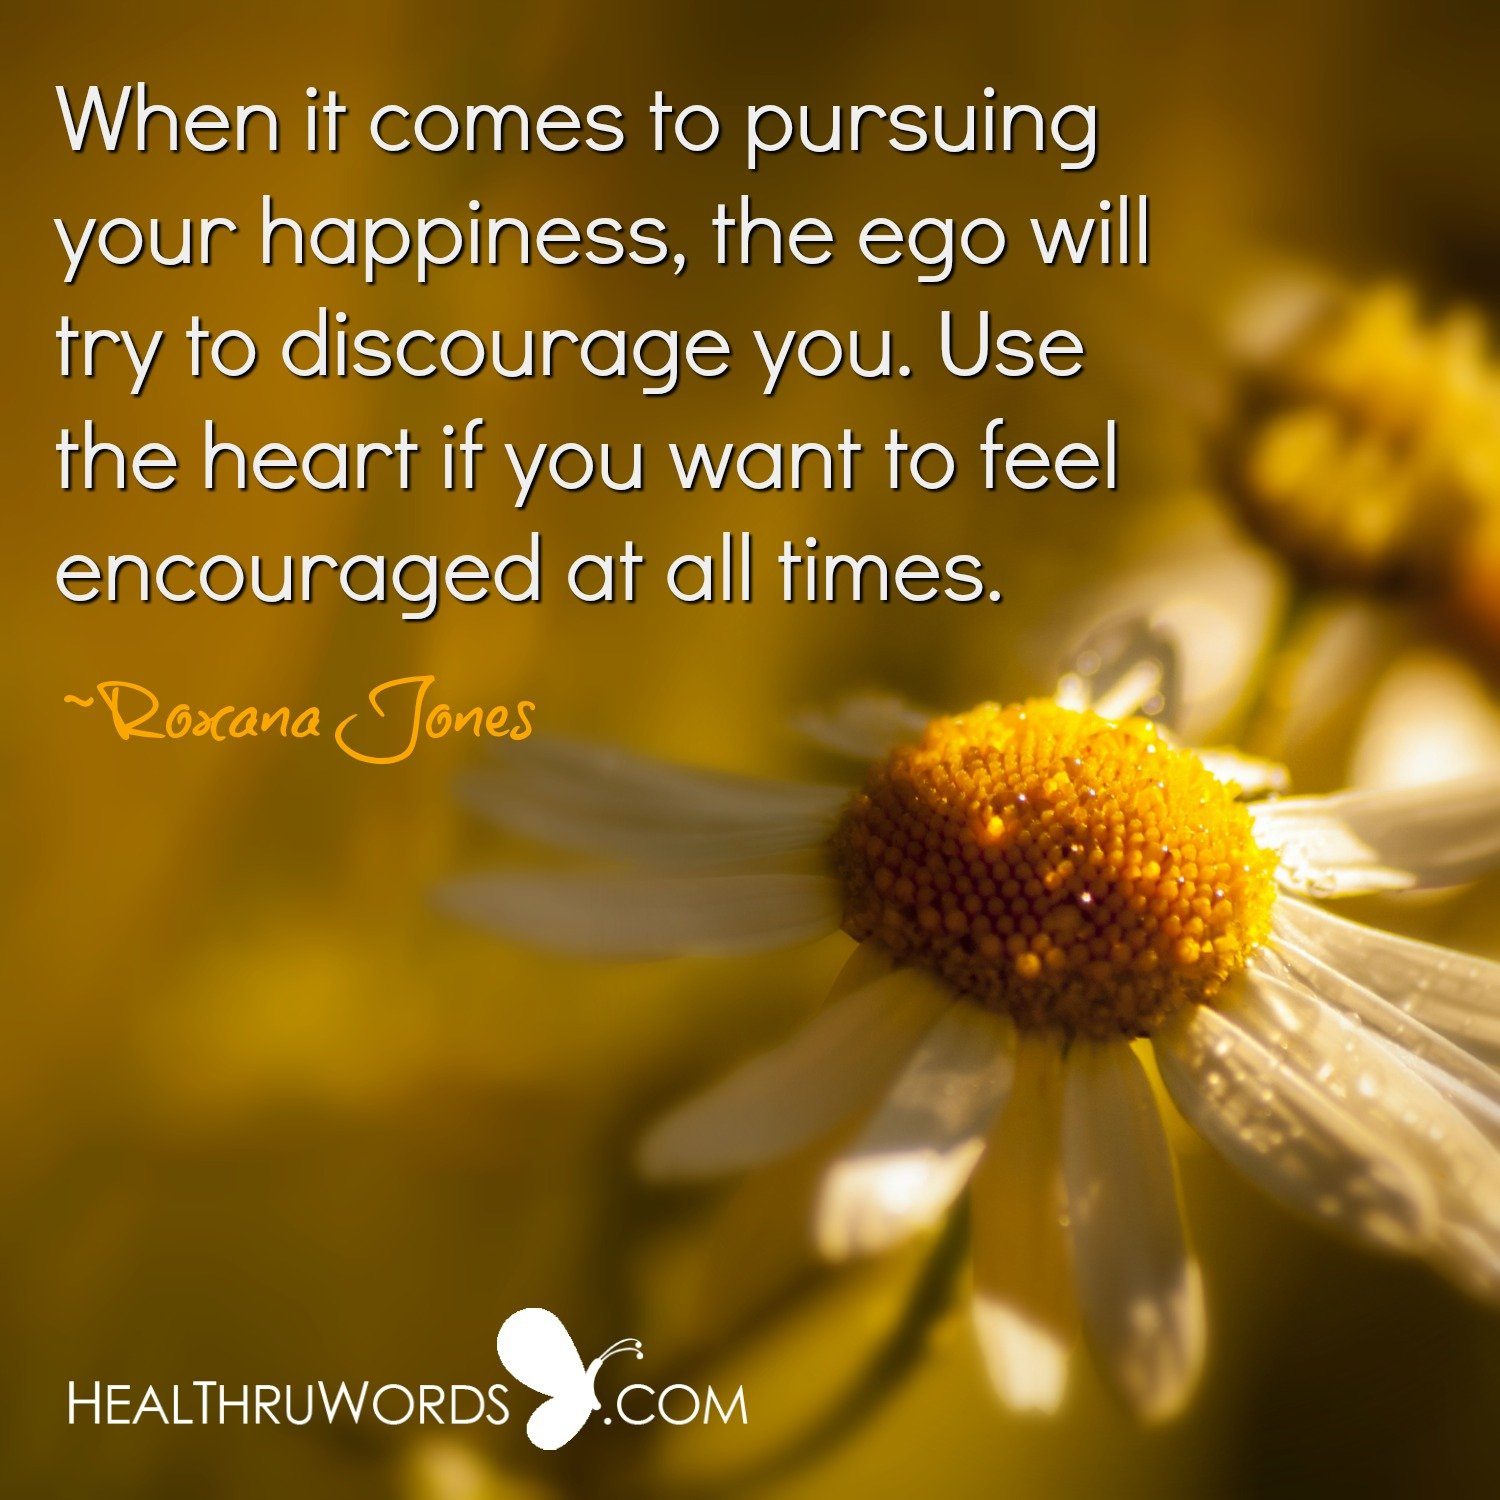 Inspirational Image: Encouraging Heart